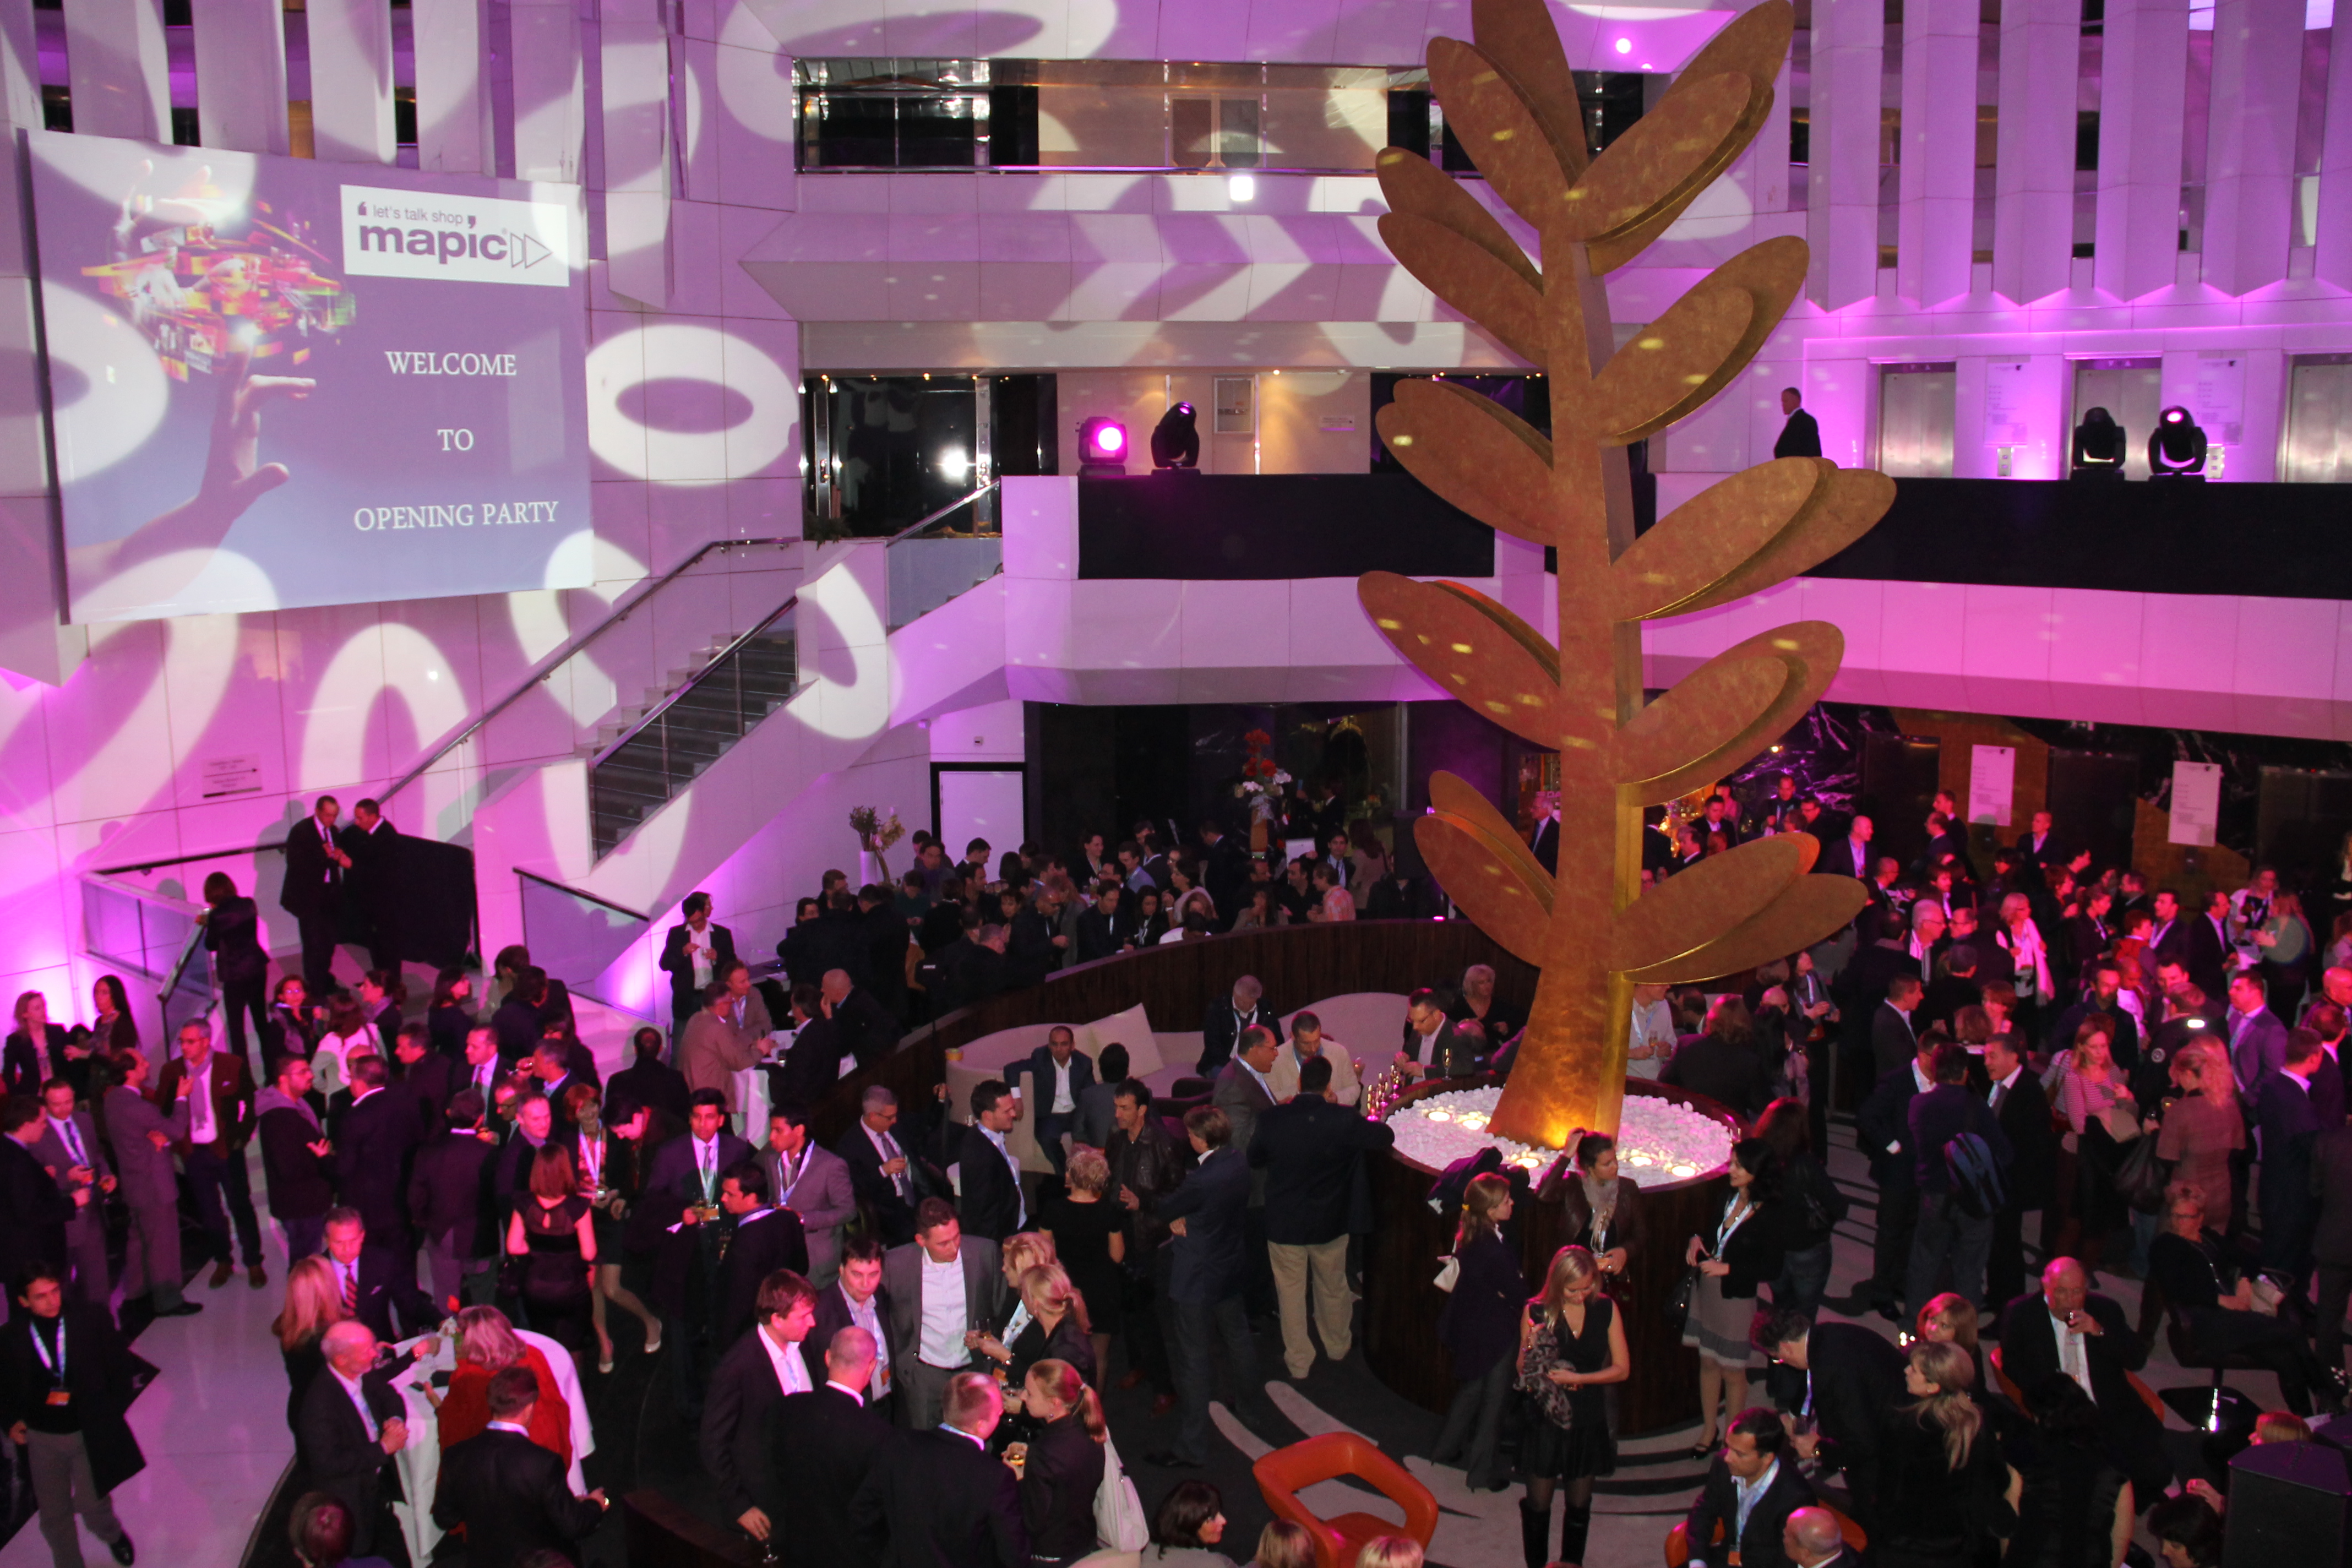 Party at MAPIC in Cannes